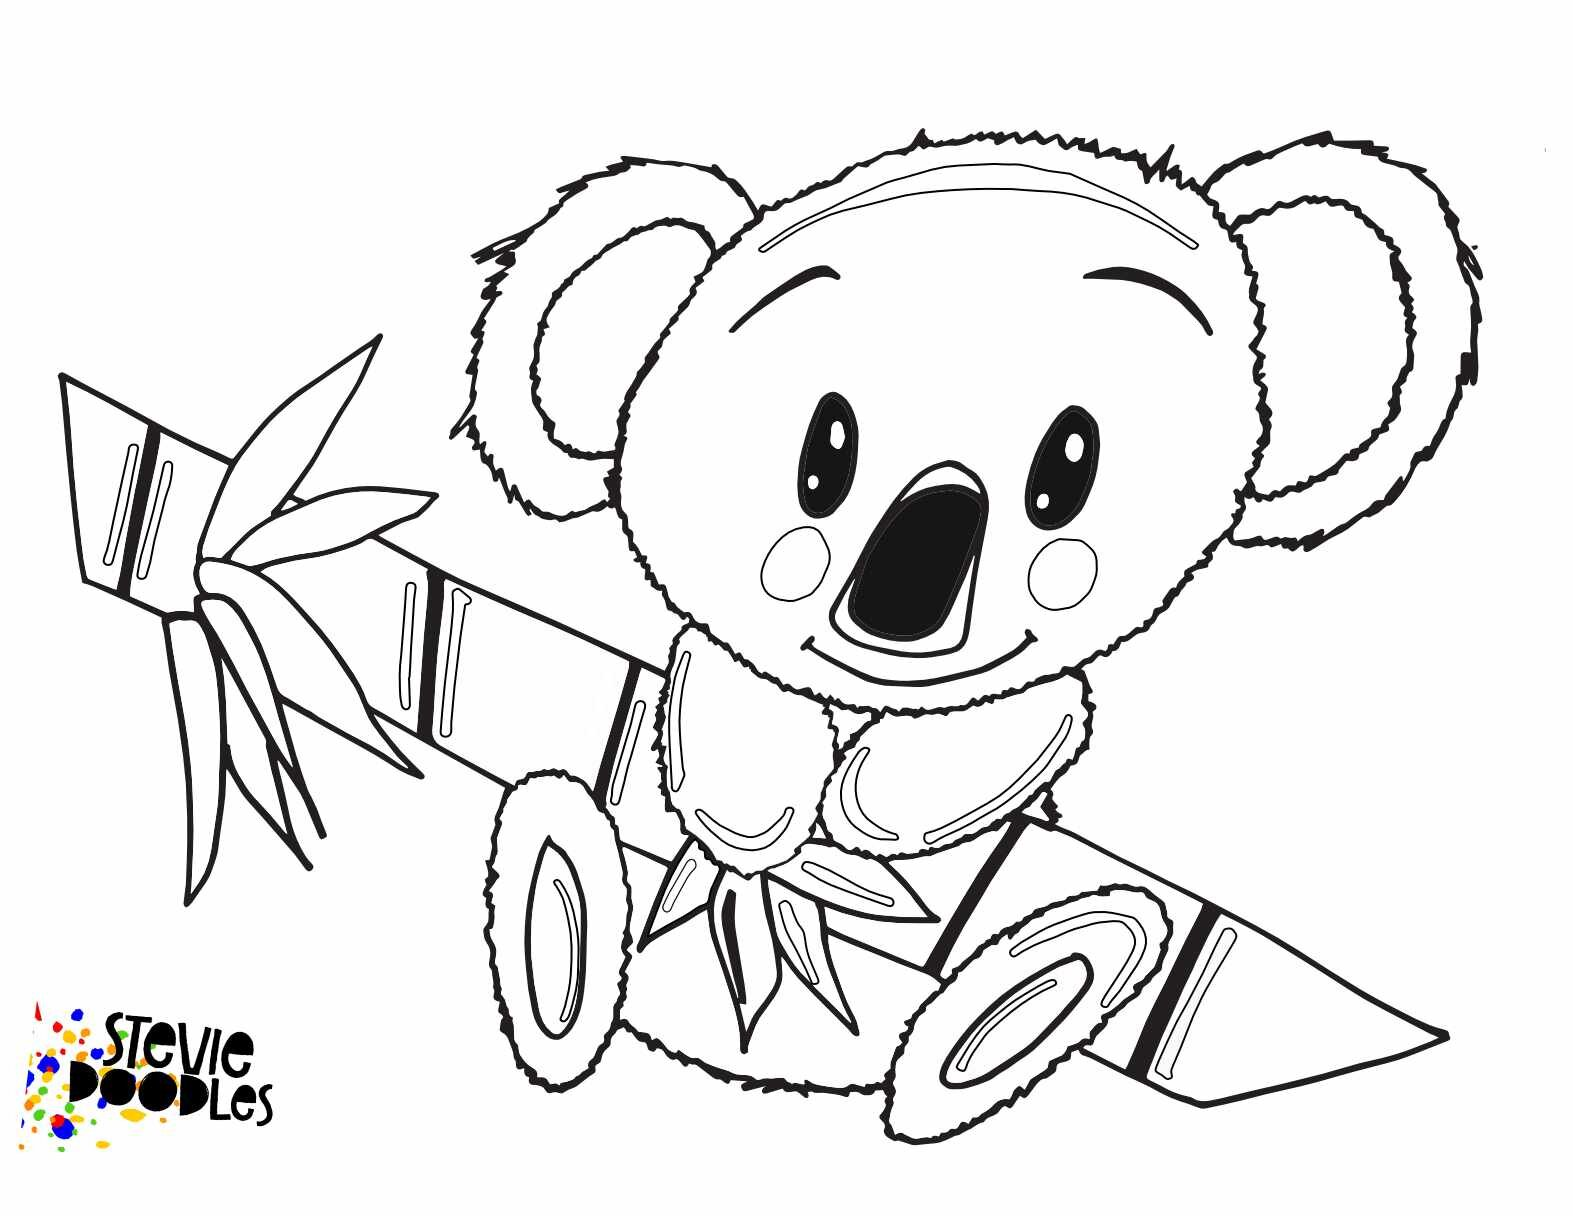 little koala with free printable coloring stevie doodles brush gel pen scent to putty coloring pages Australia Coloring Page